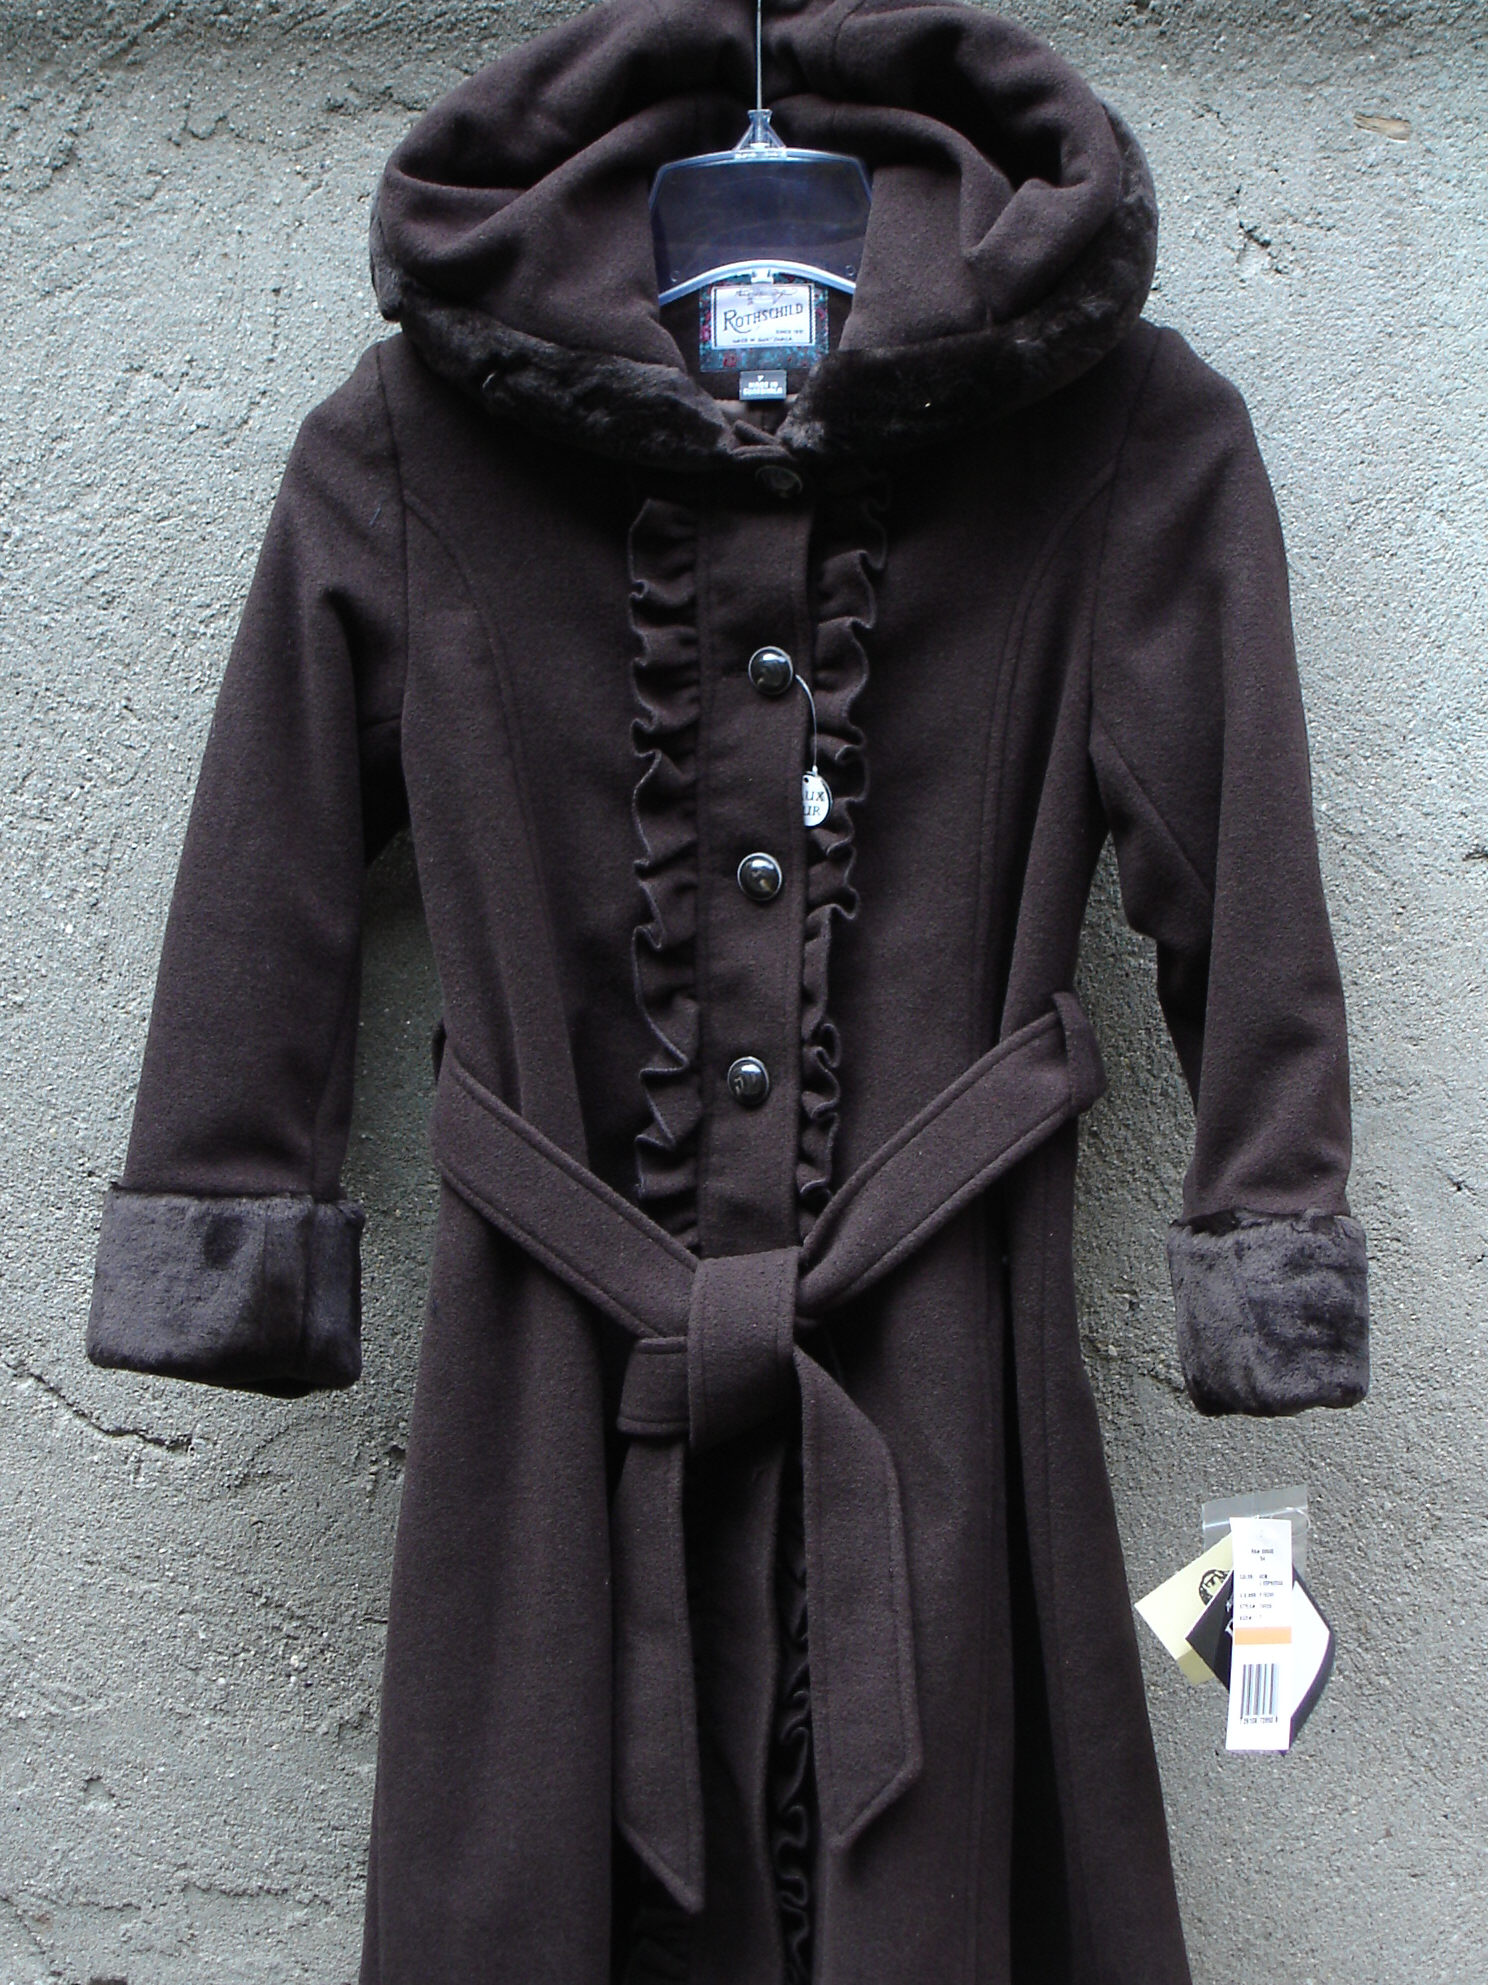 191206be5b61 These stylish wool girls coats are very fashionable this year. This warm  coat is offered in brown. This girl s coat has fur trim